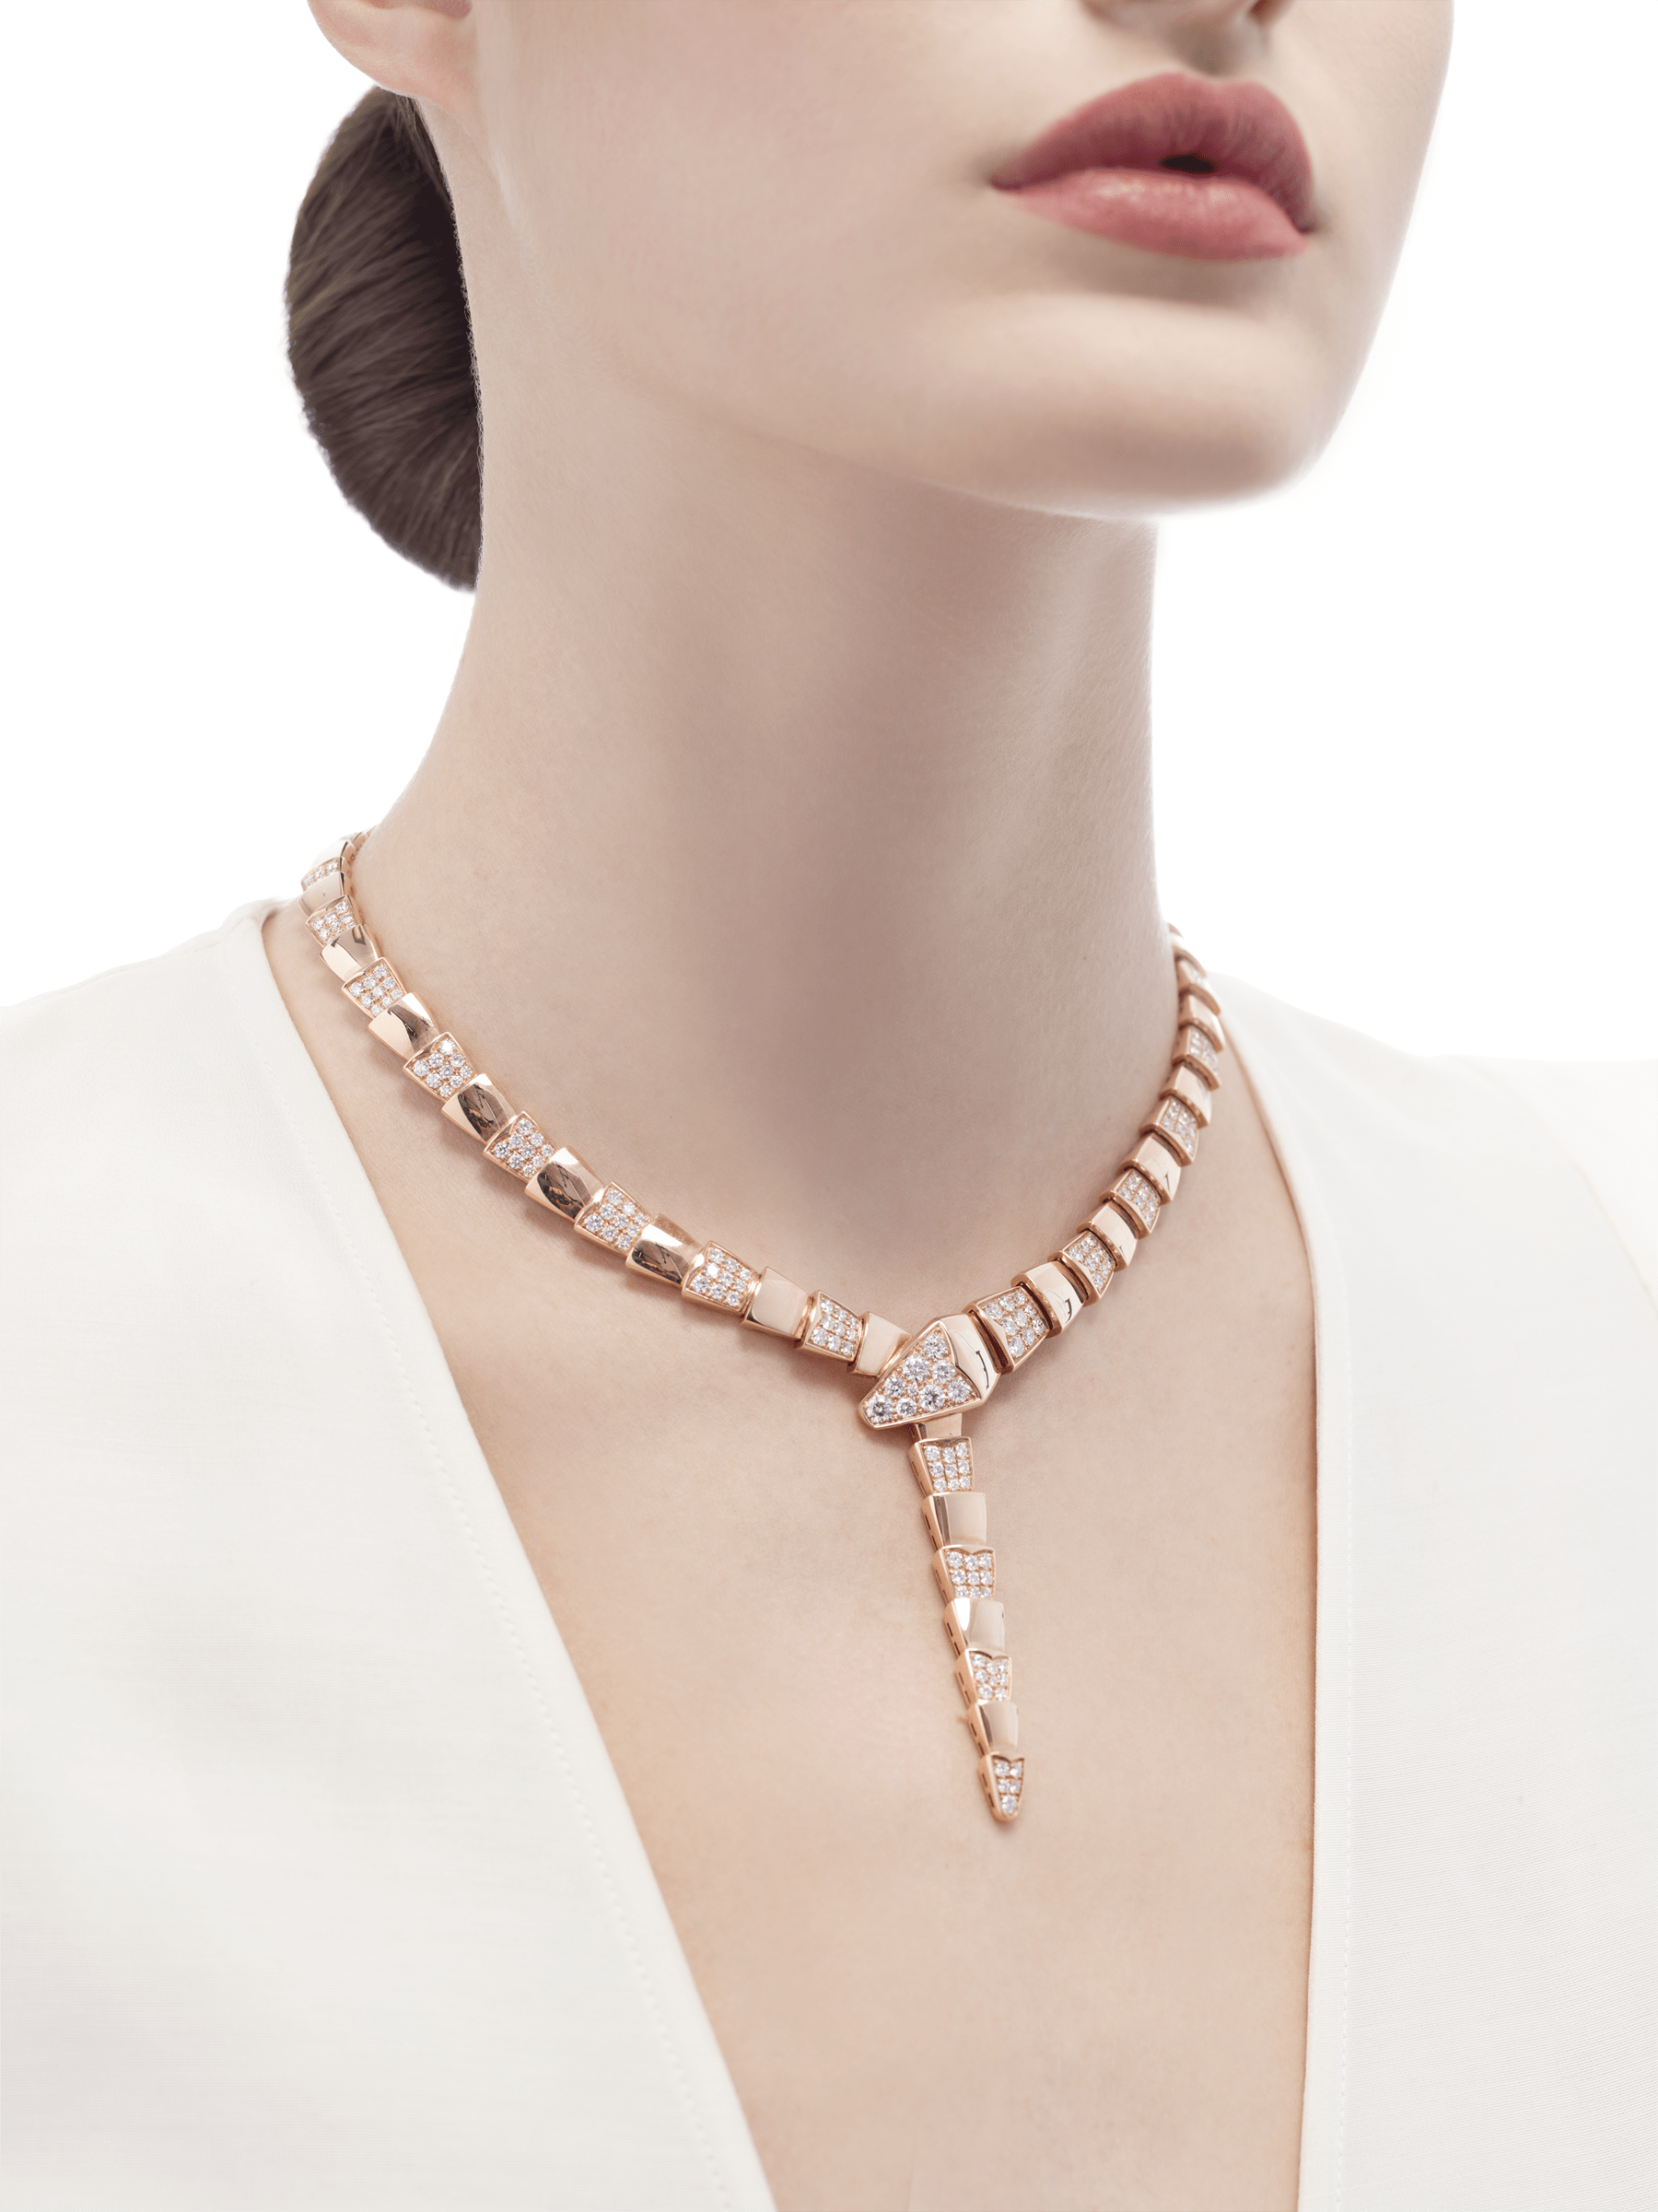 Serpenti necklace in 18 kt rose gold, set with demi pavé diamonds. 348166 image 2